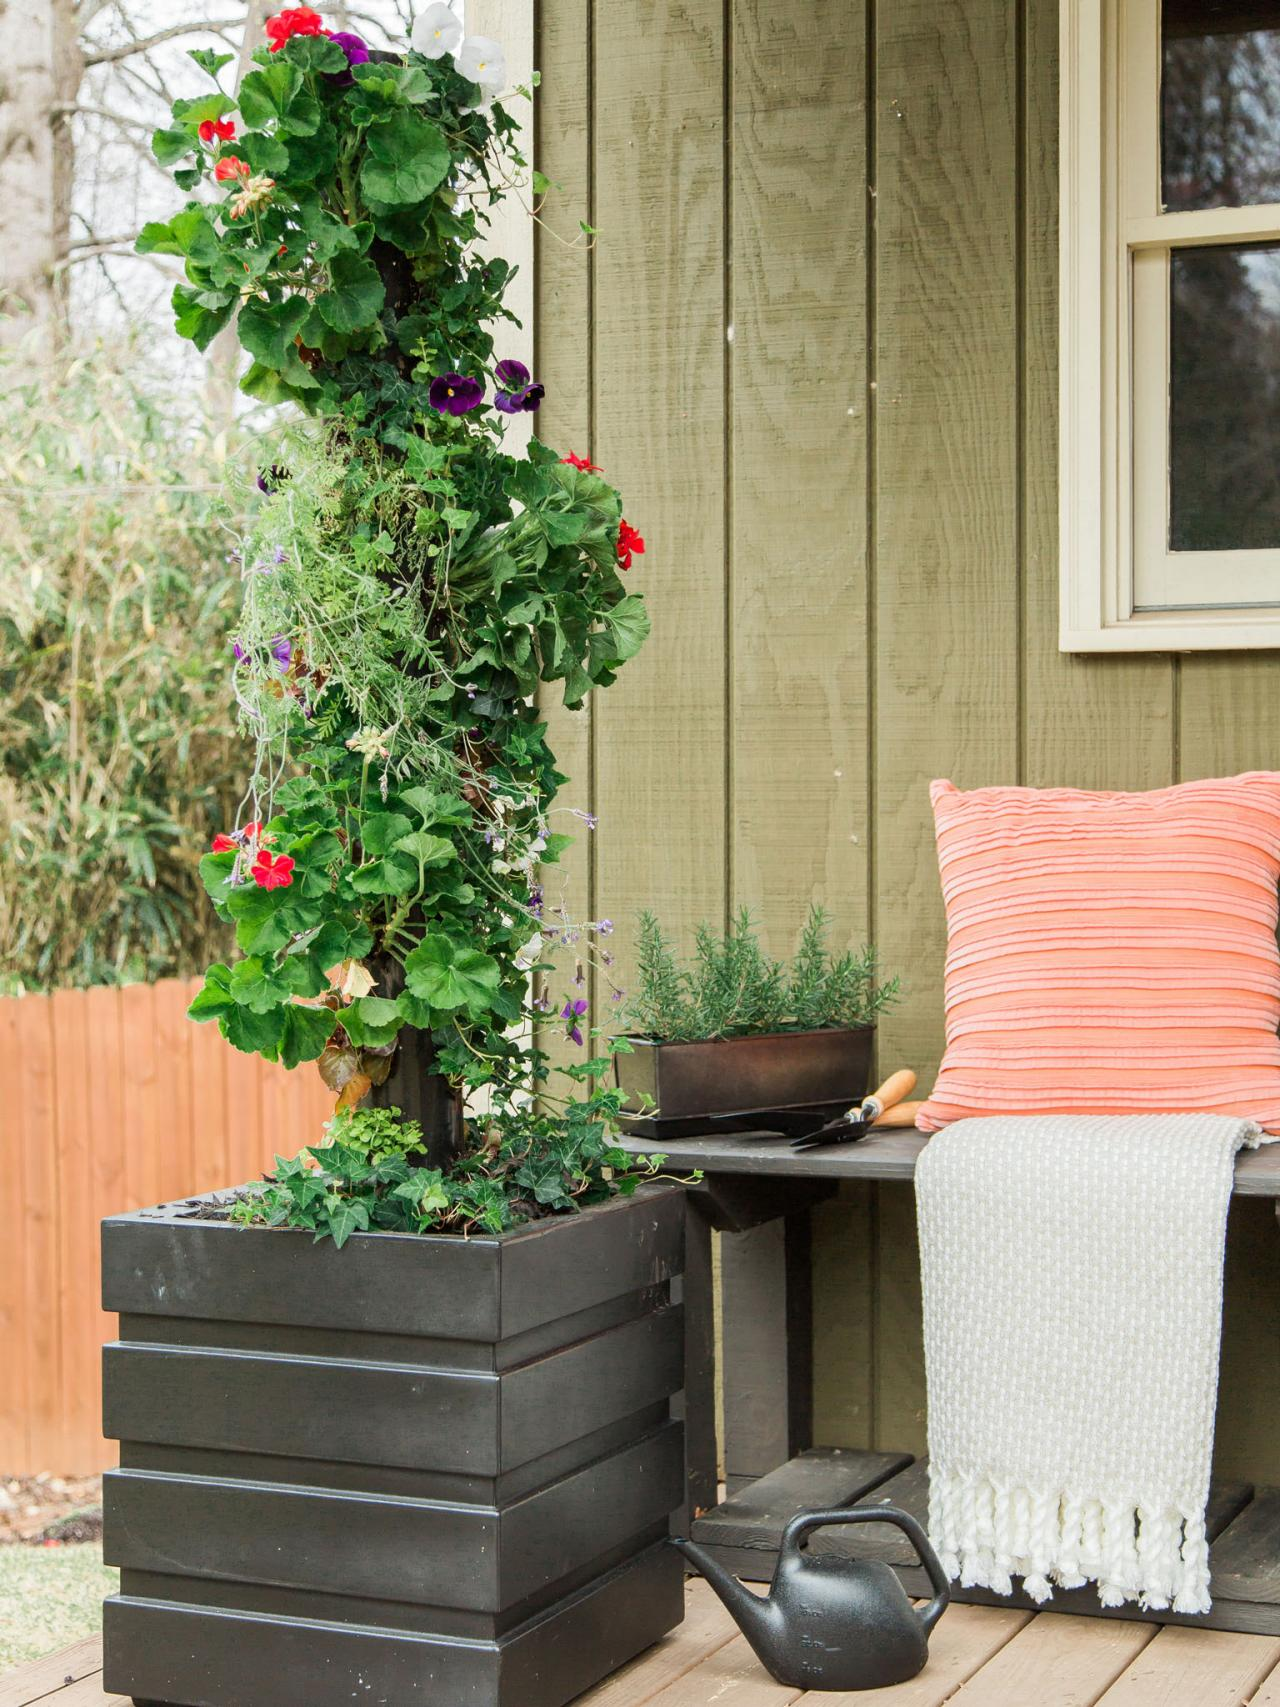 How To Make A Vertical Garden With PVC Pipe